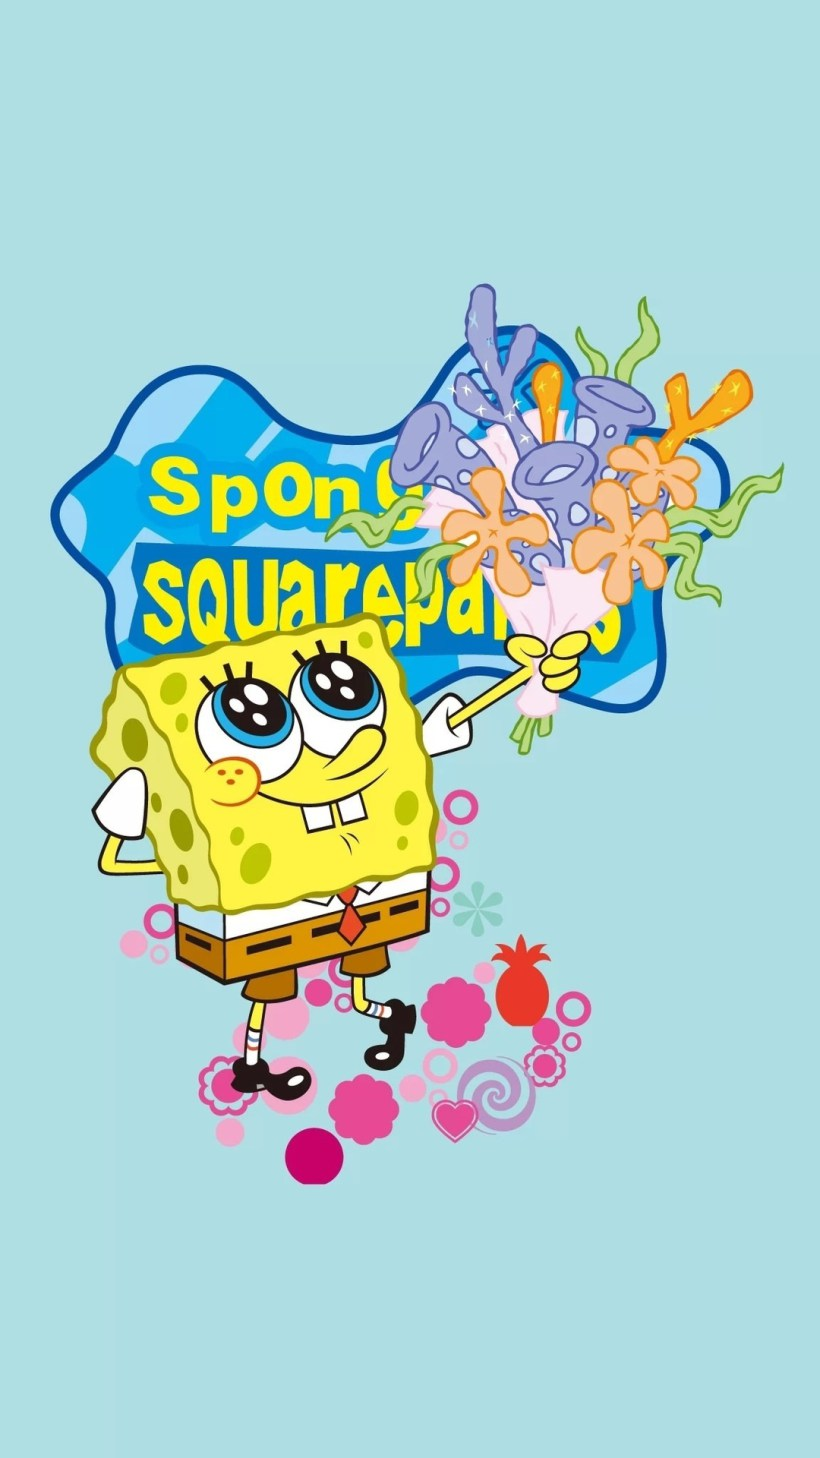 Gambar Spongebob Lucu Buat Wallpaper Spongebob With A Flower 1959693 Hd Wallpaper Backgrounds Download